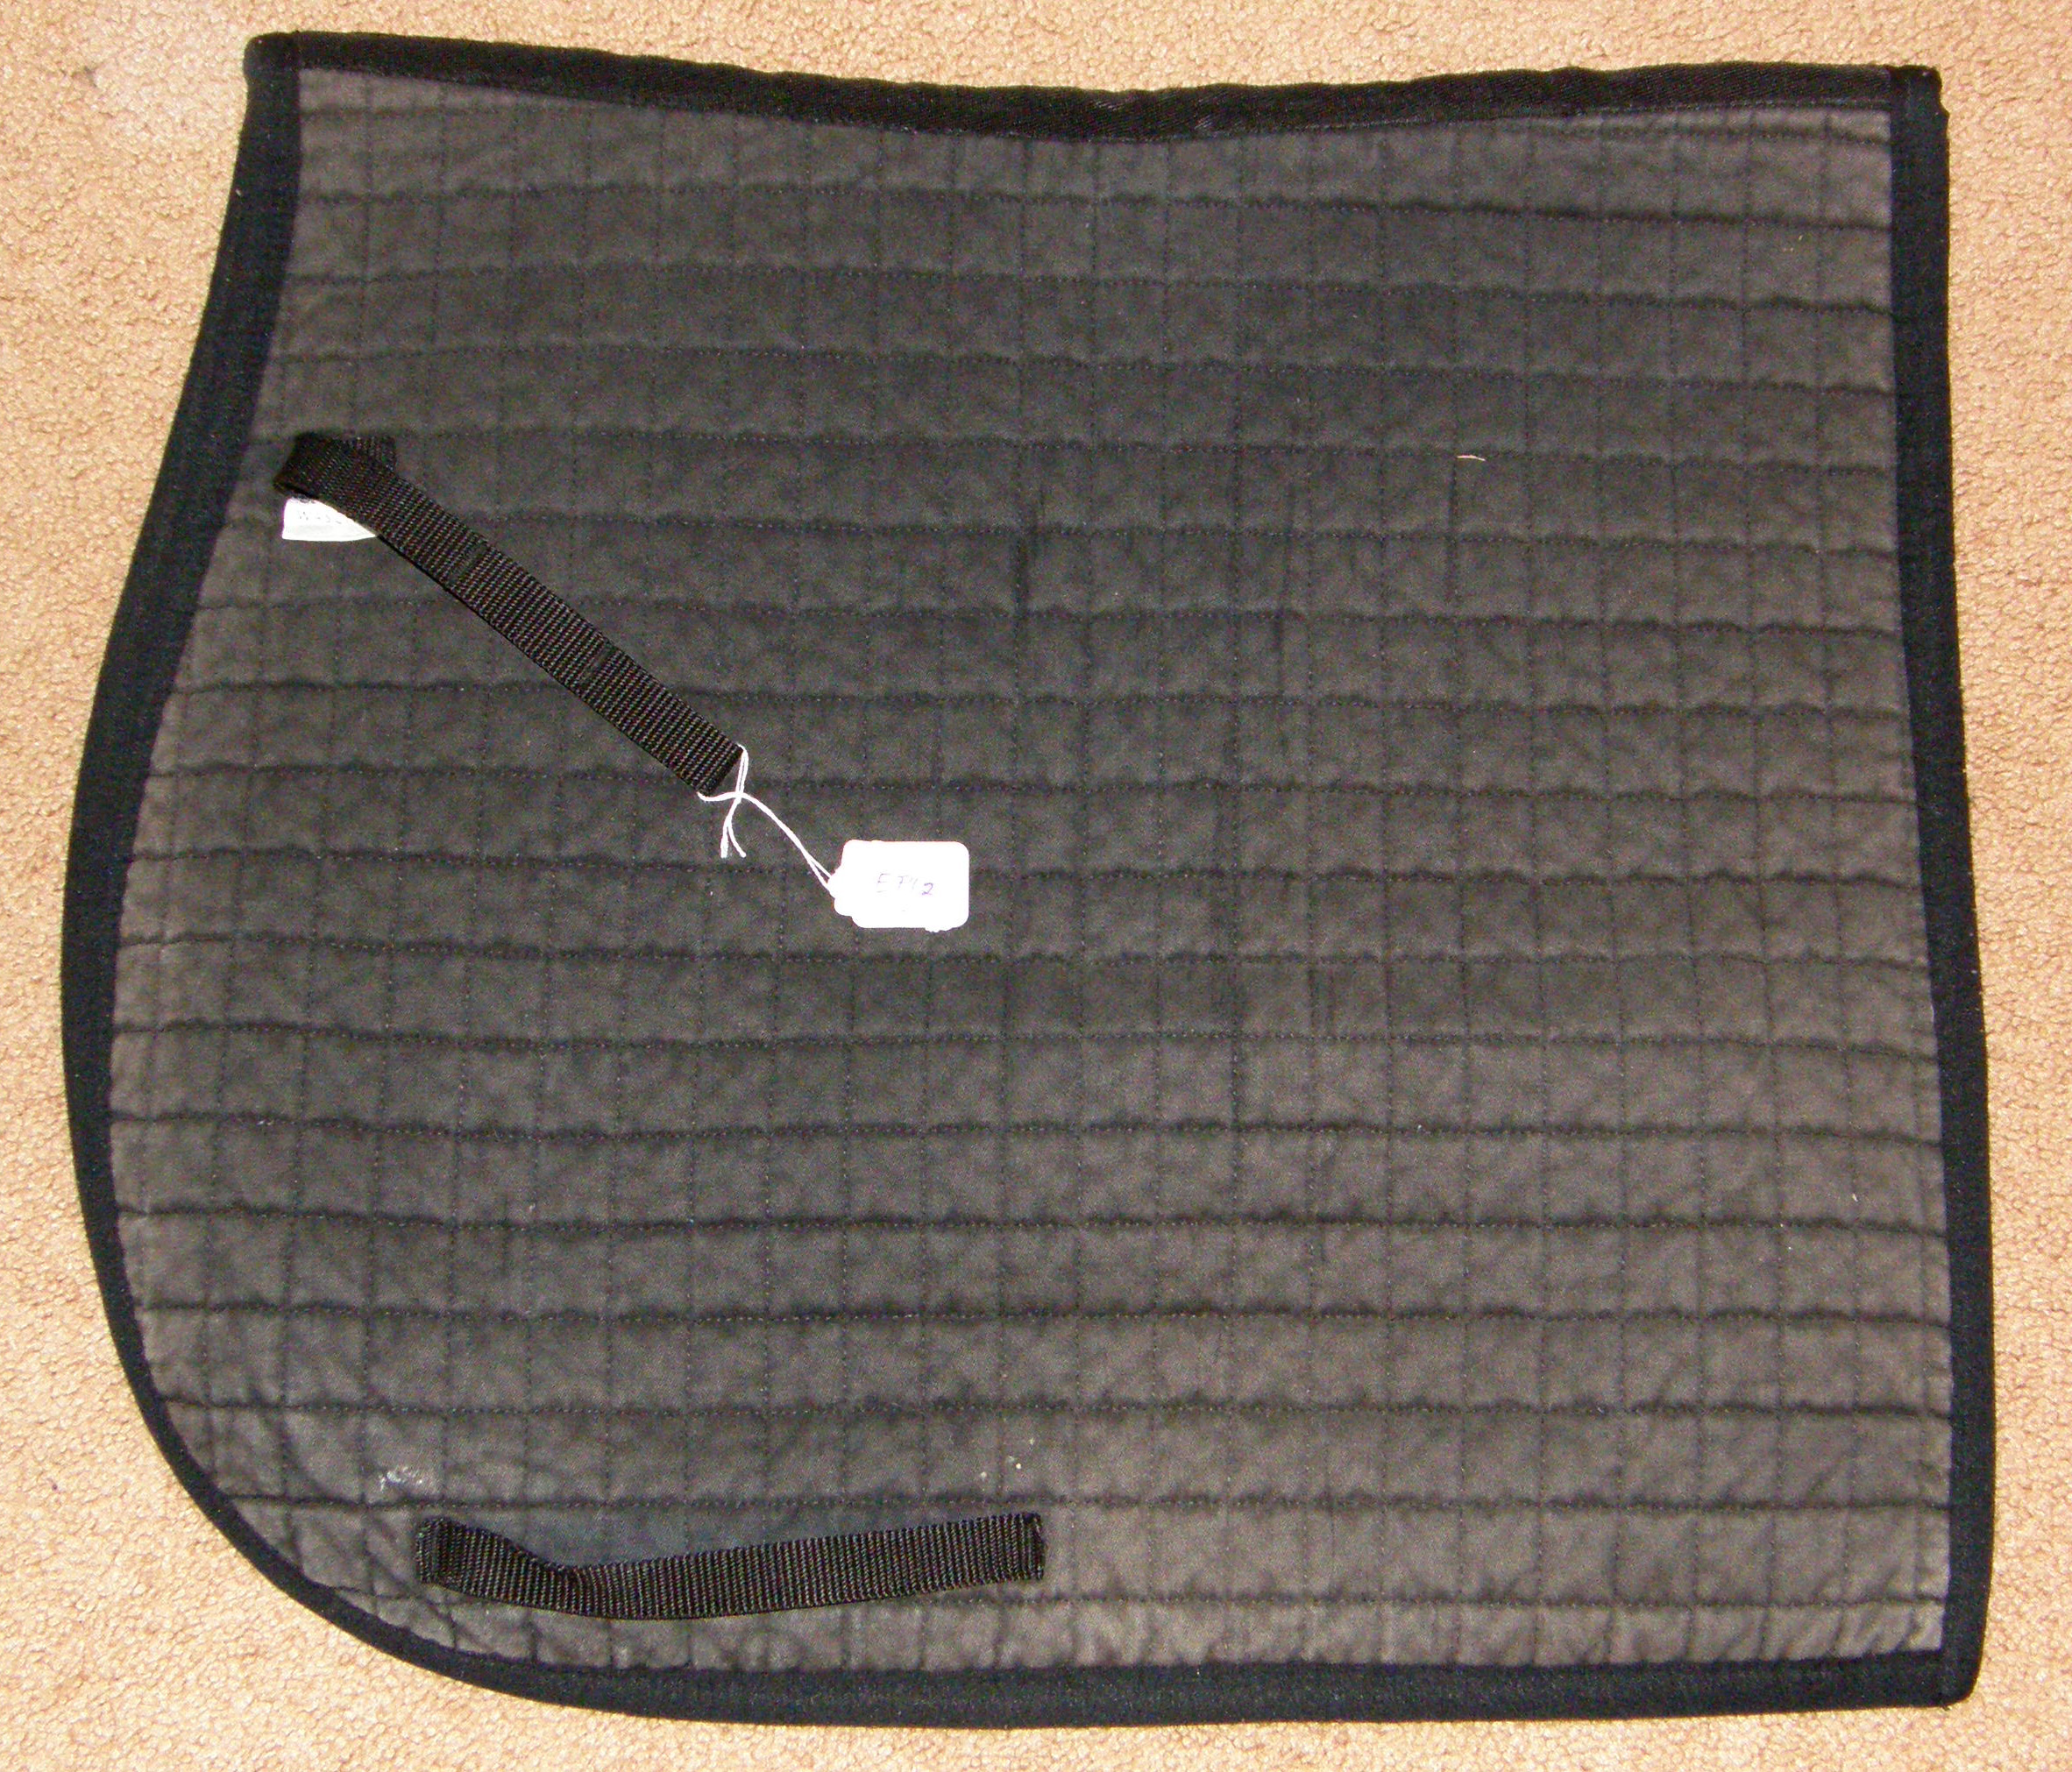 Pfiff Dressage Pad Quilted Cotton Dressage Pad Event Pad English Saddle Pad Black